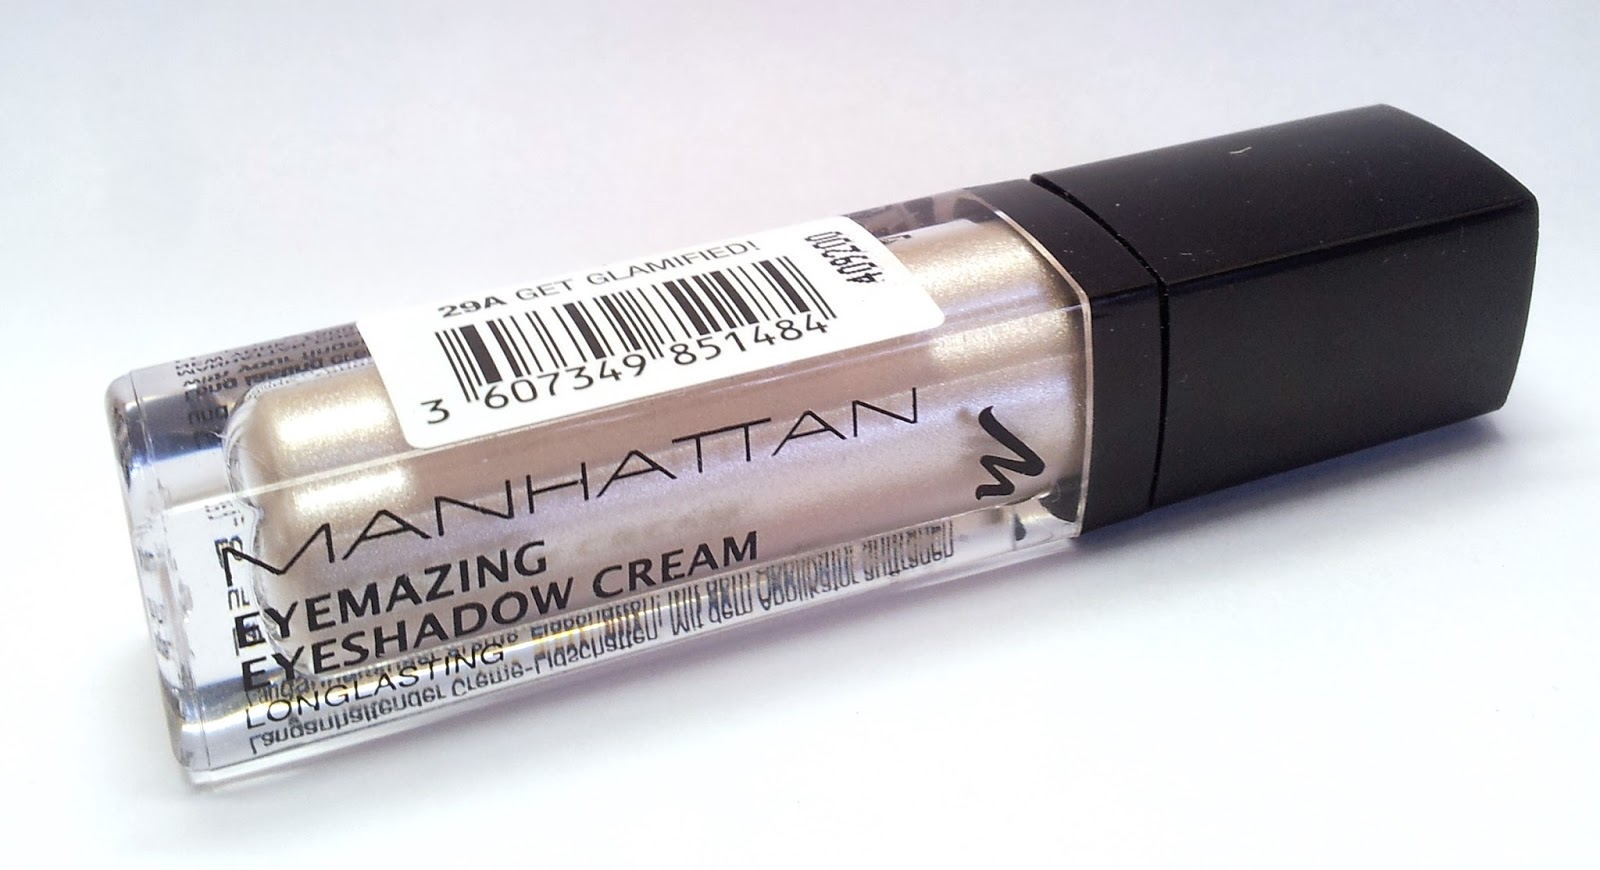 Manhattan Eyemazing Eyeshadow cream 29A